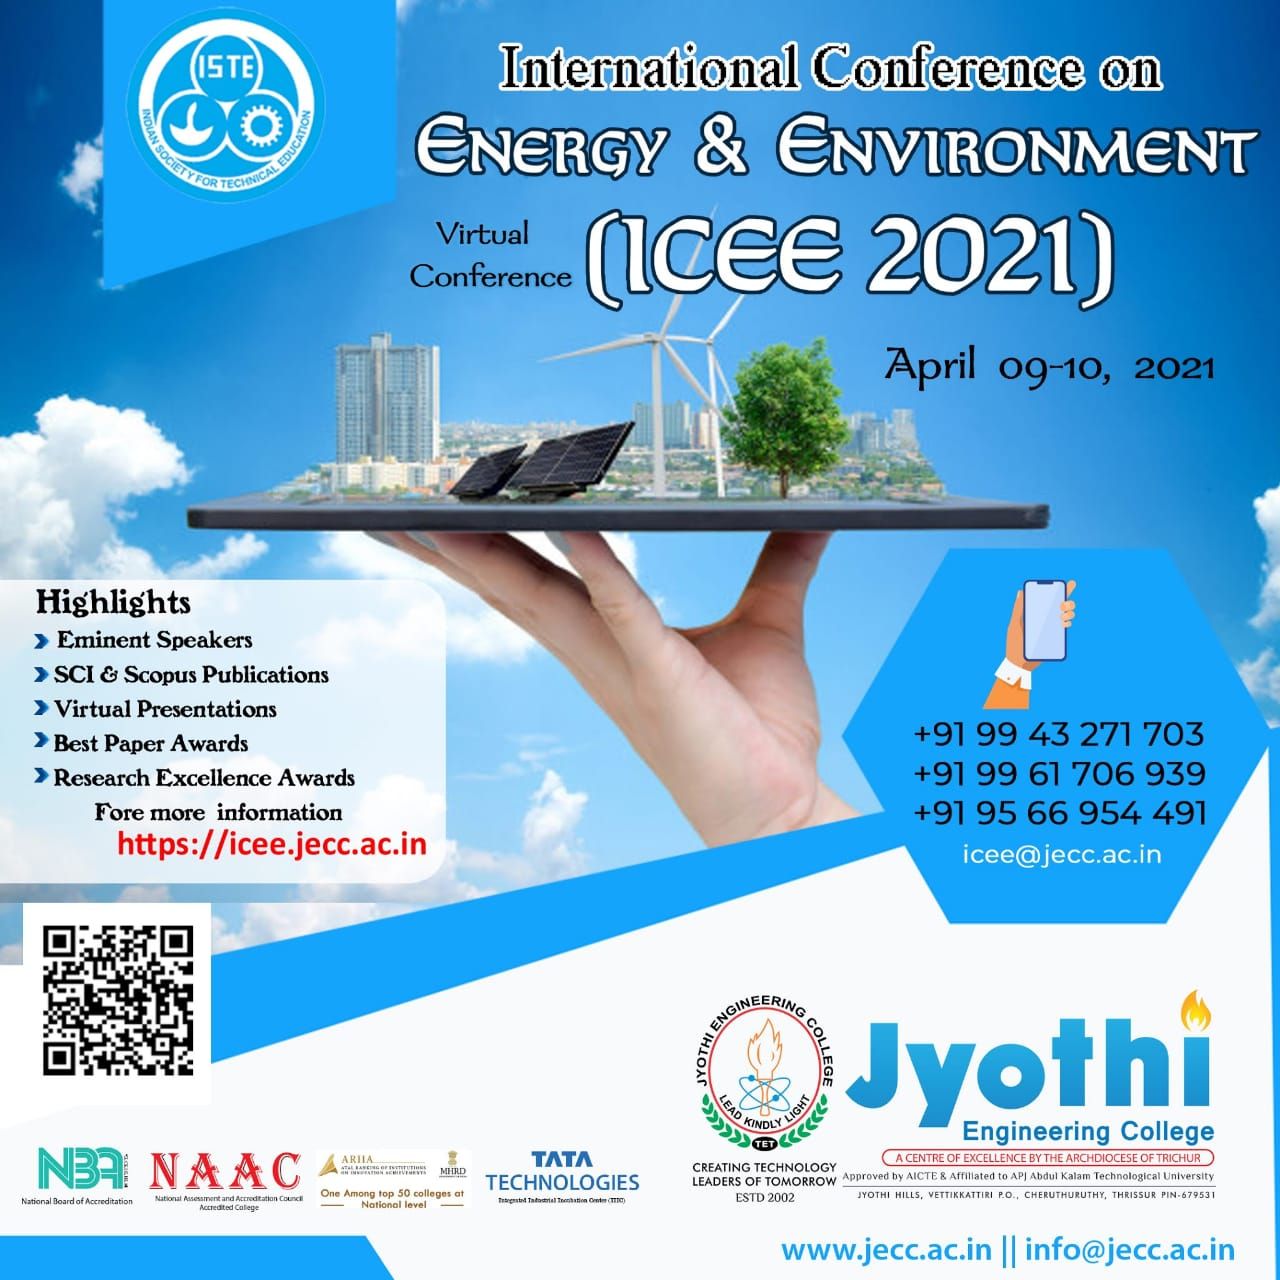 International Conference on Energy and Environment ICEE 2021